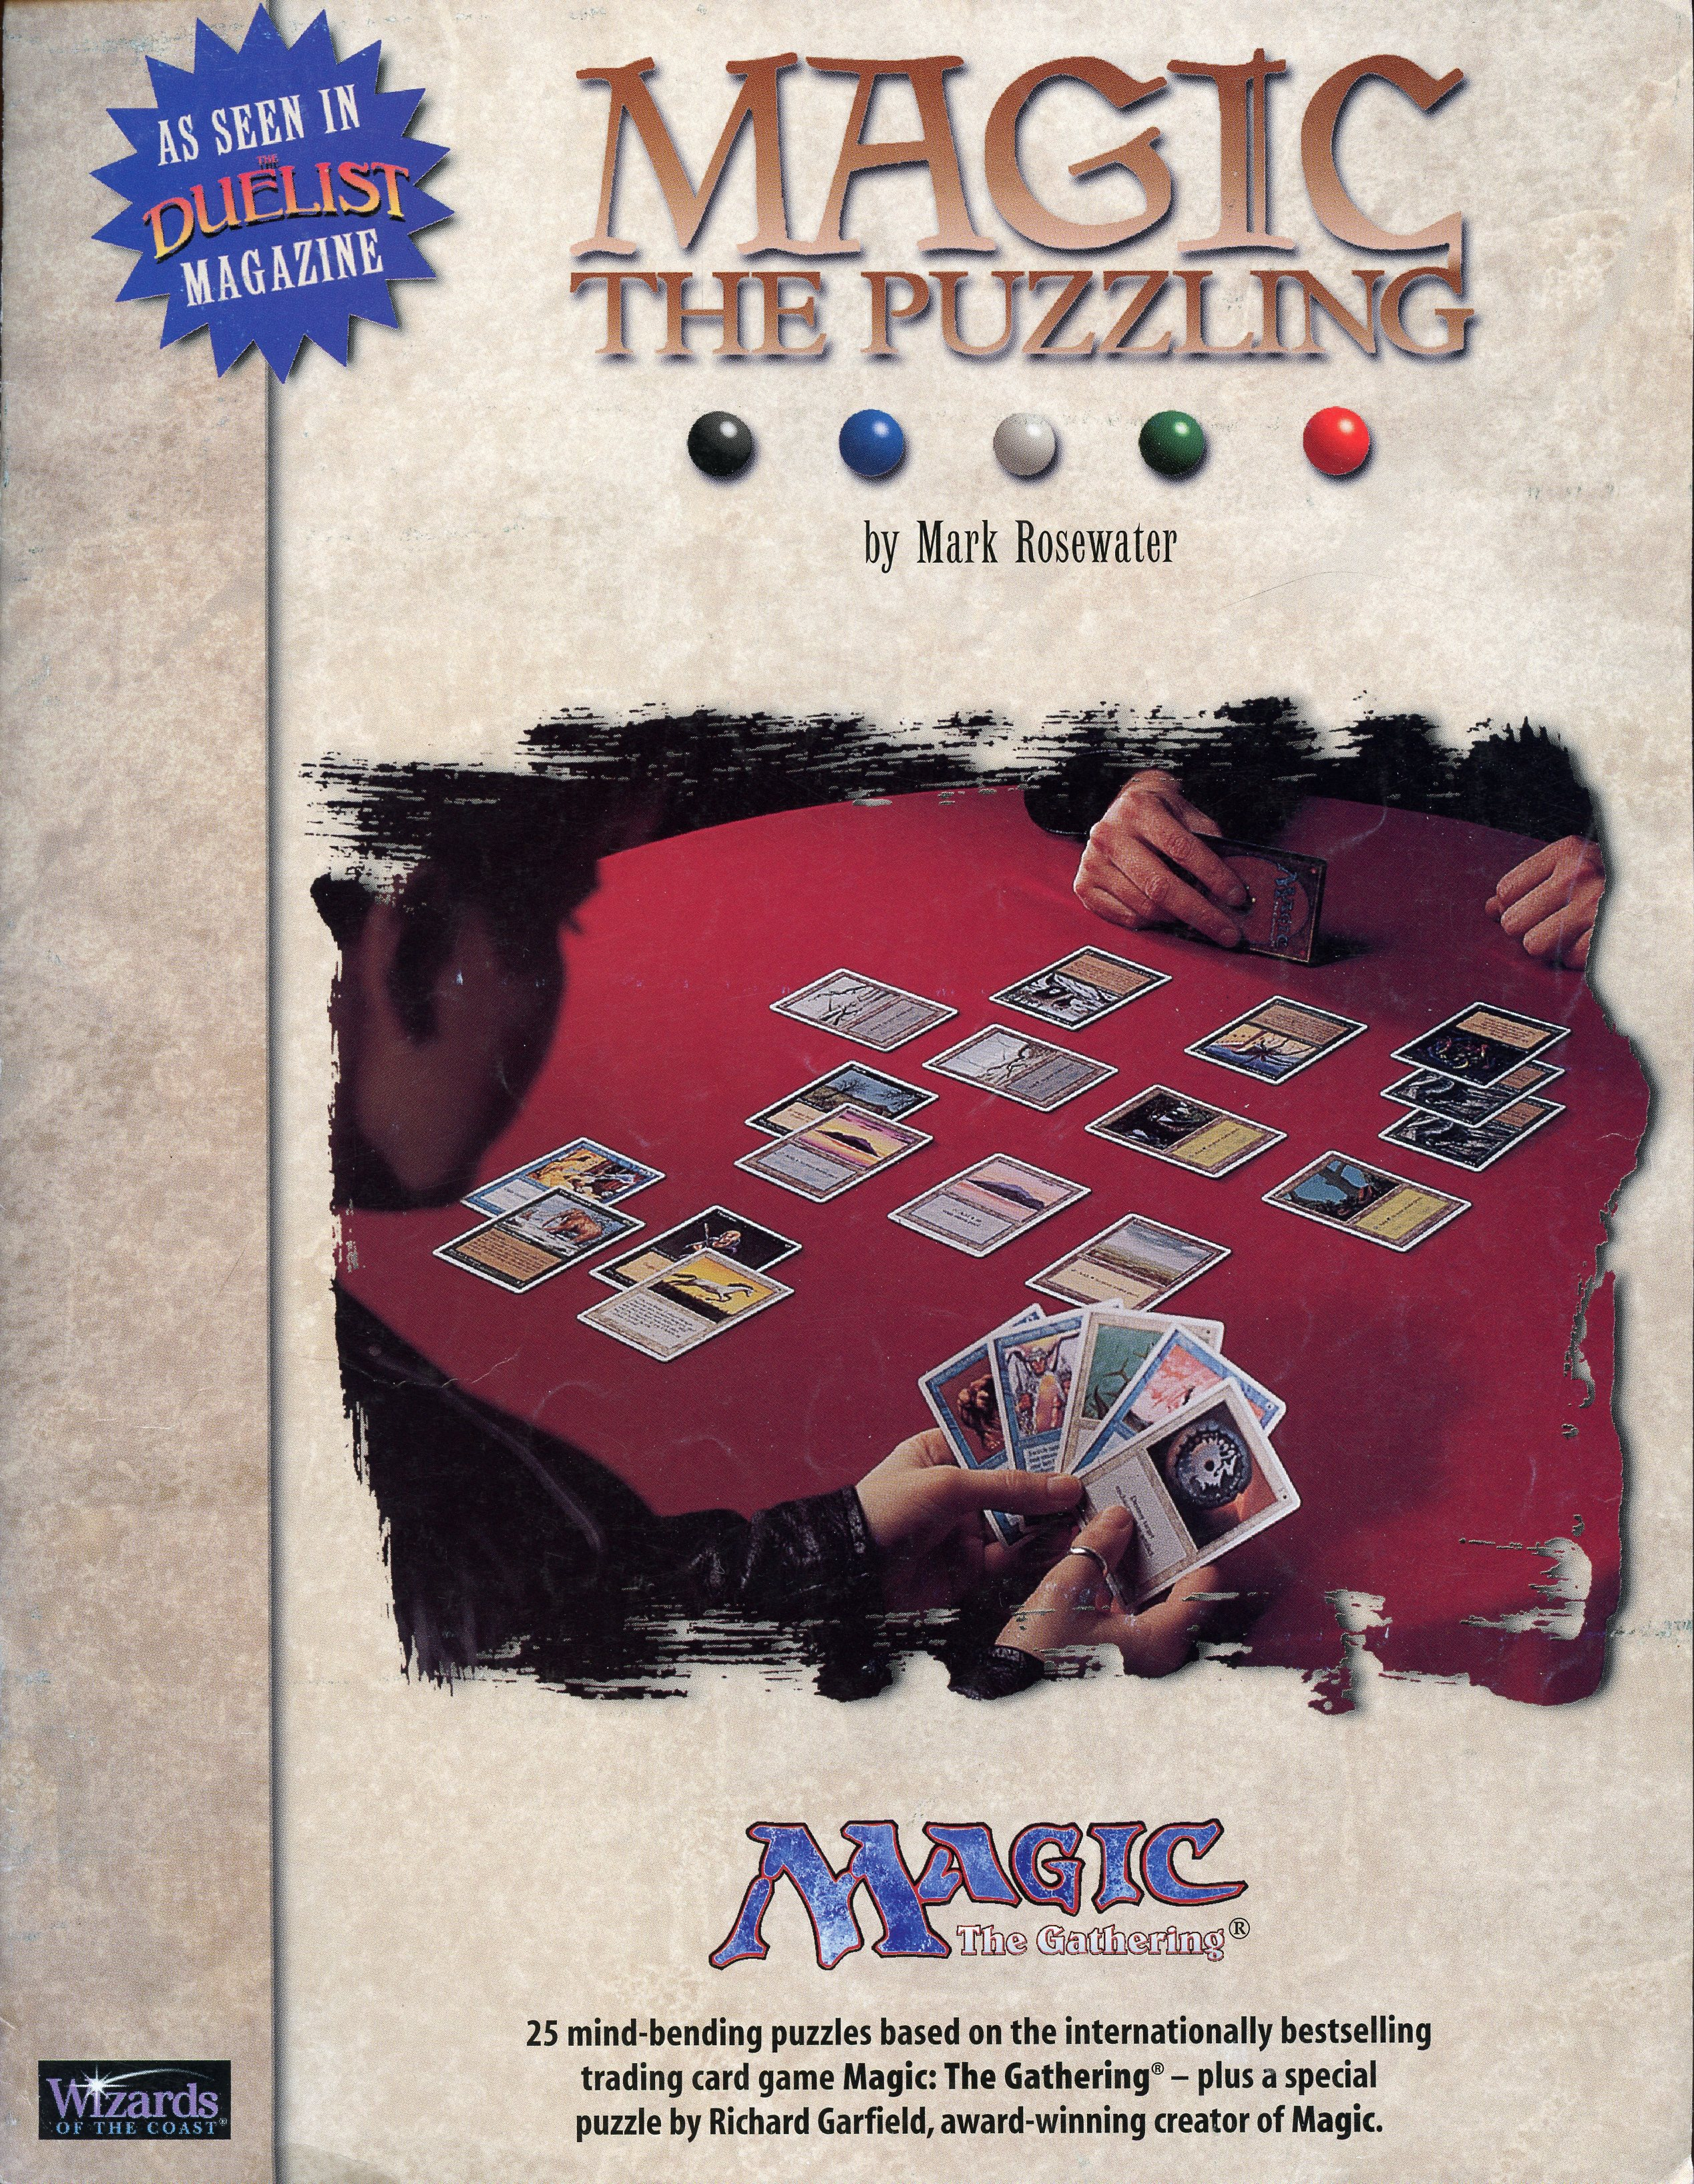 Magic The Puzzling Preview